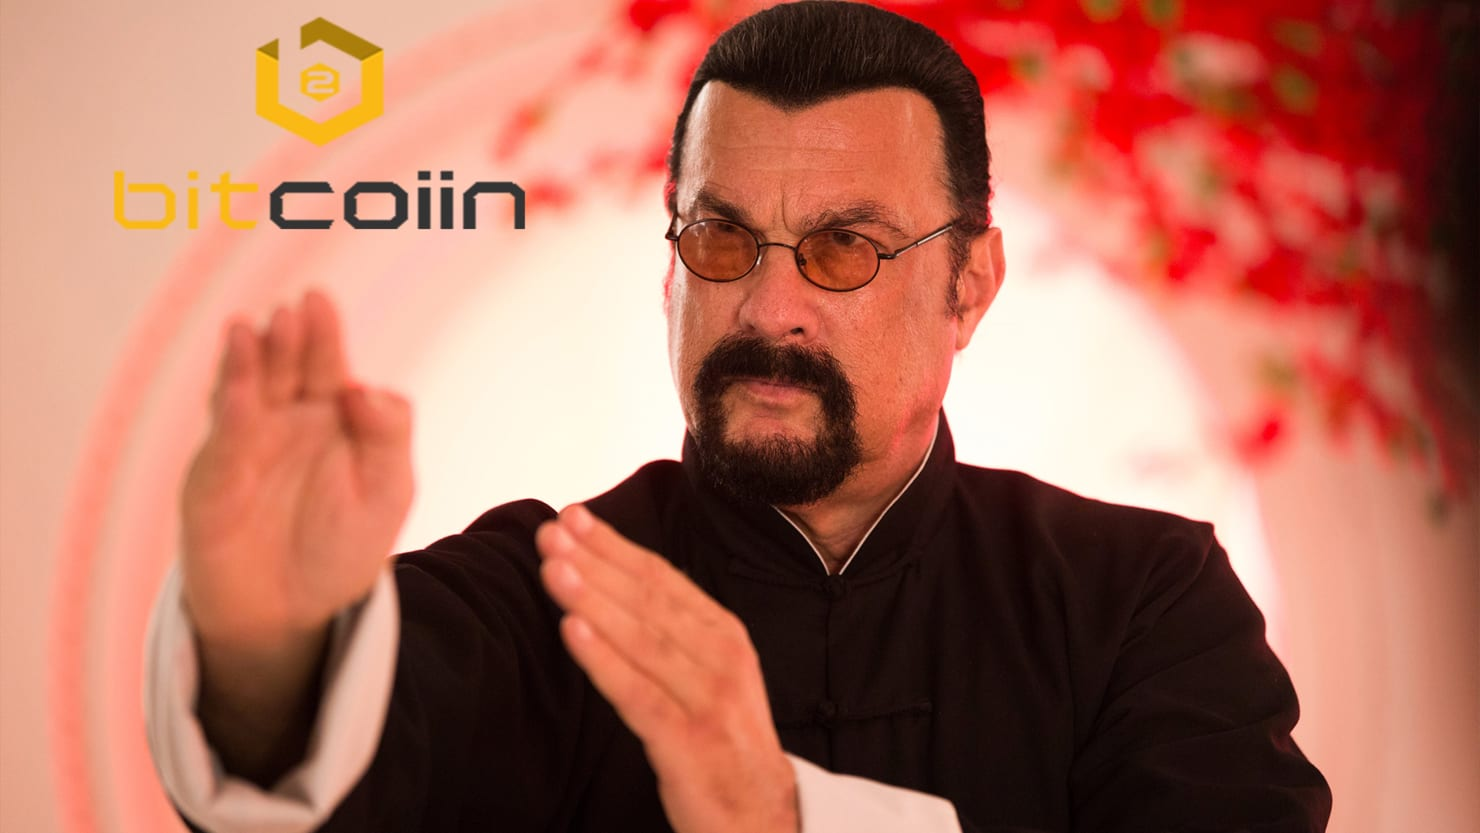 Steven Seagal, a Missing Private Witness, and an Alleged Crypto Fraud